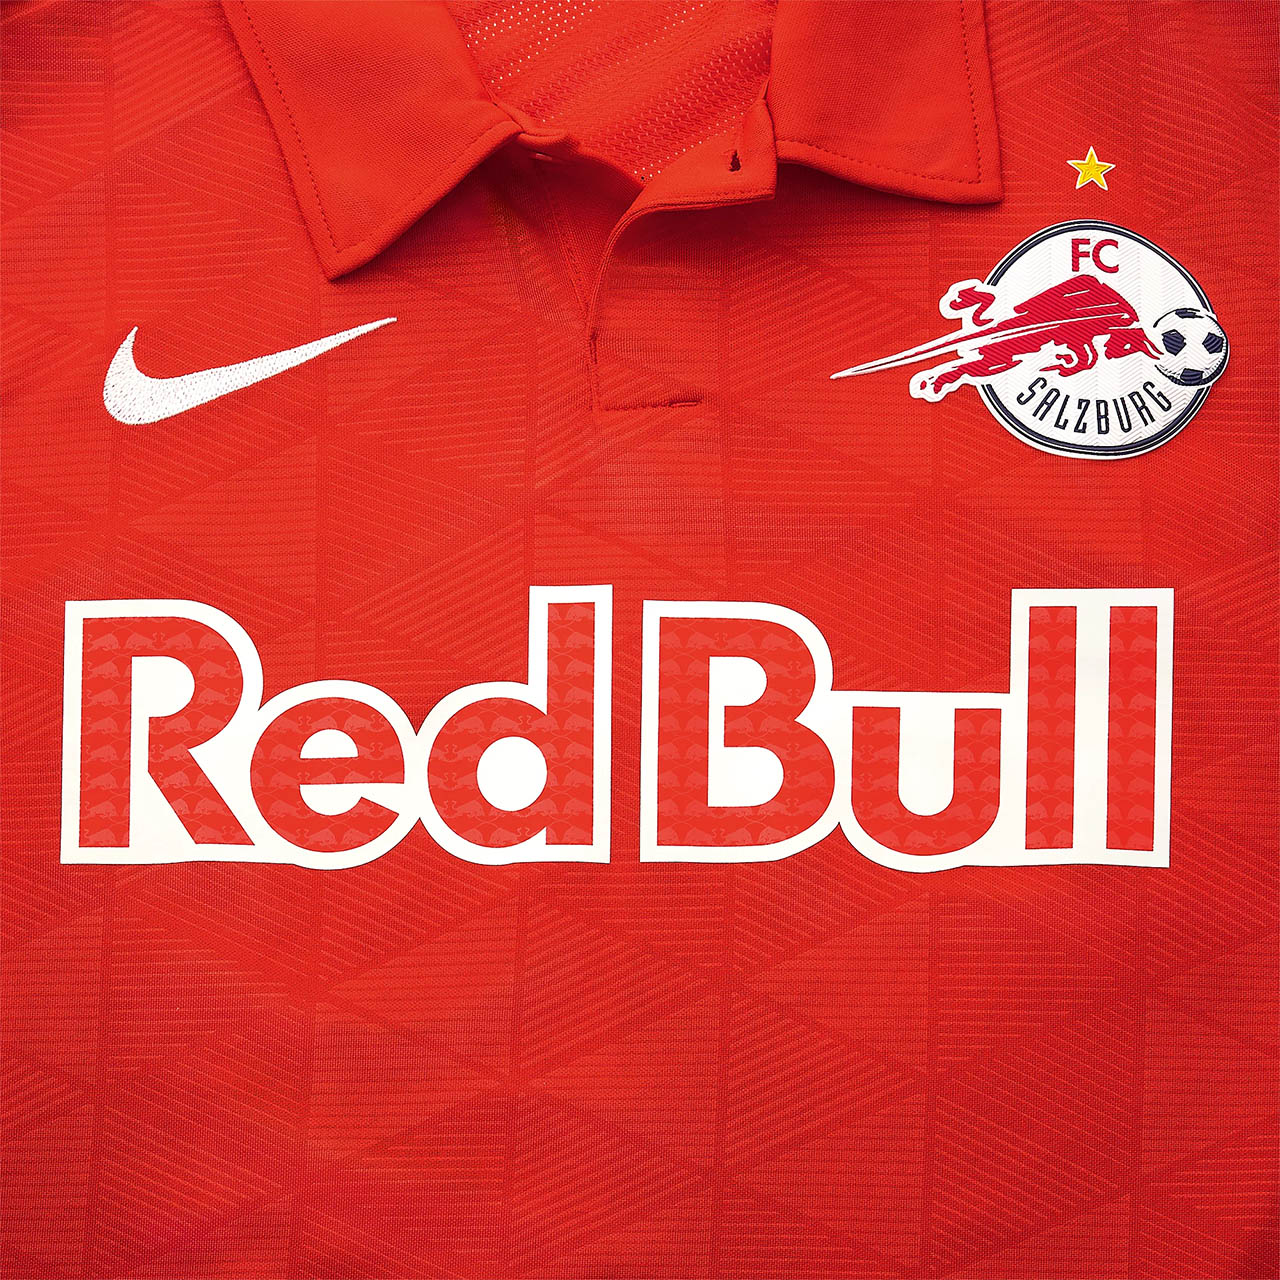 Camisas do FC Salzburg 2020-2021 Nike Champions League